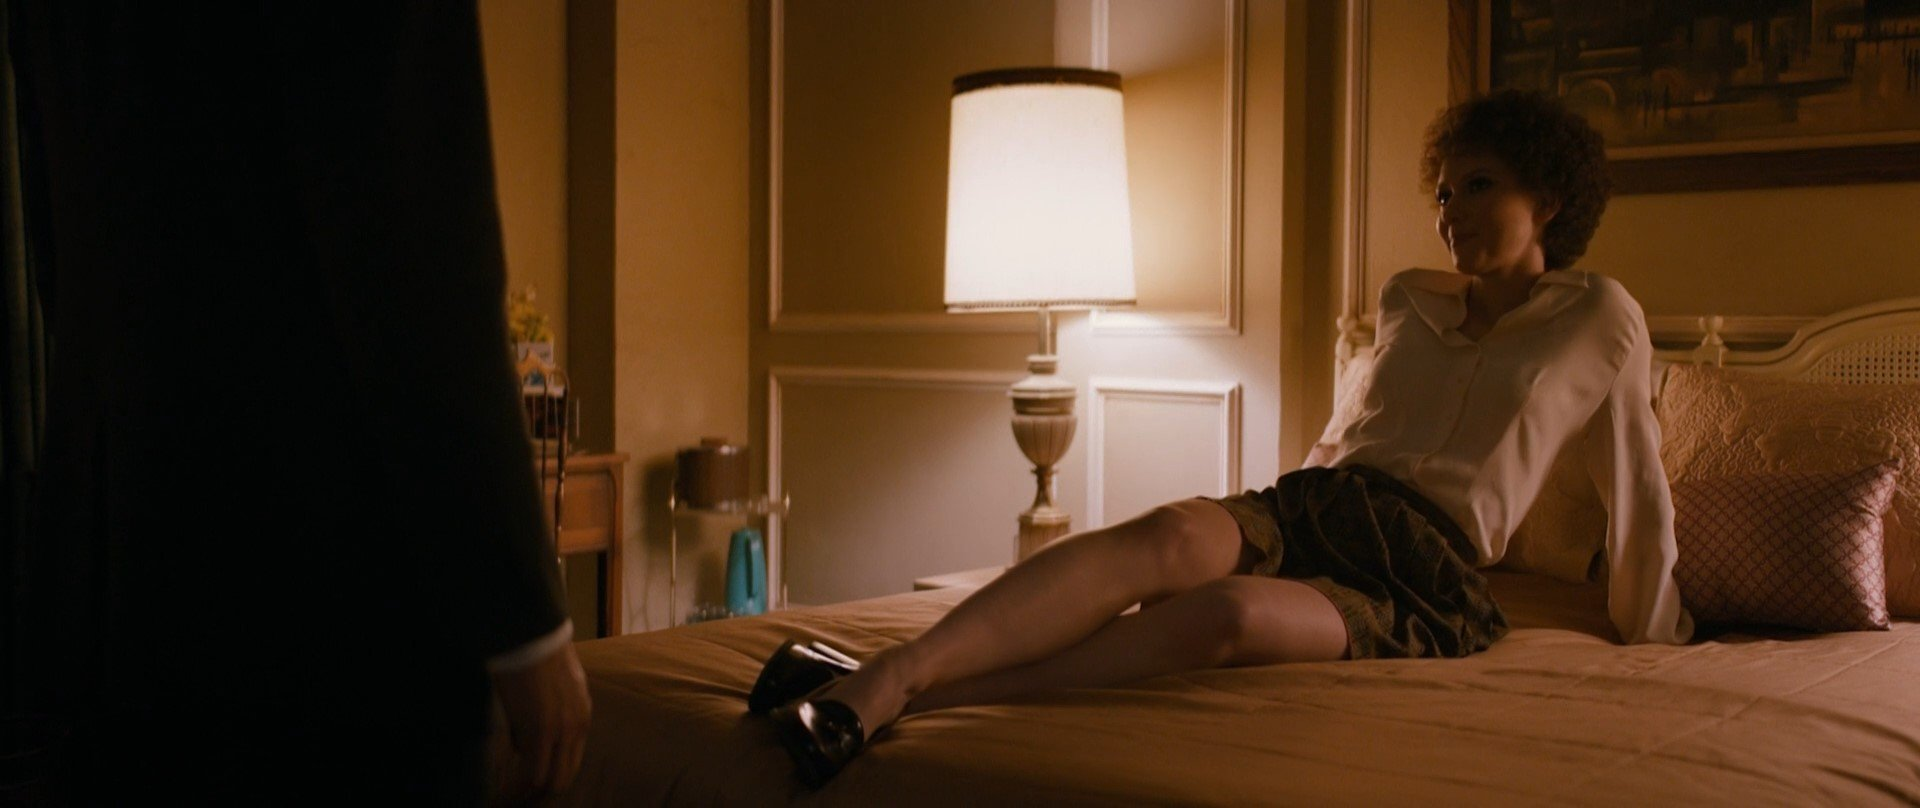 the oversexuality of women in american films